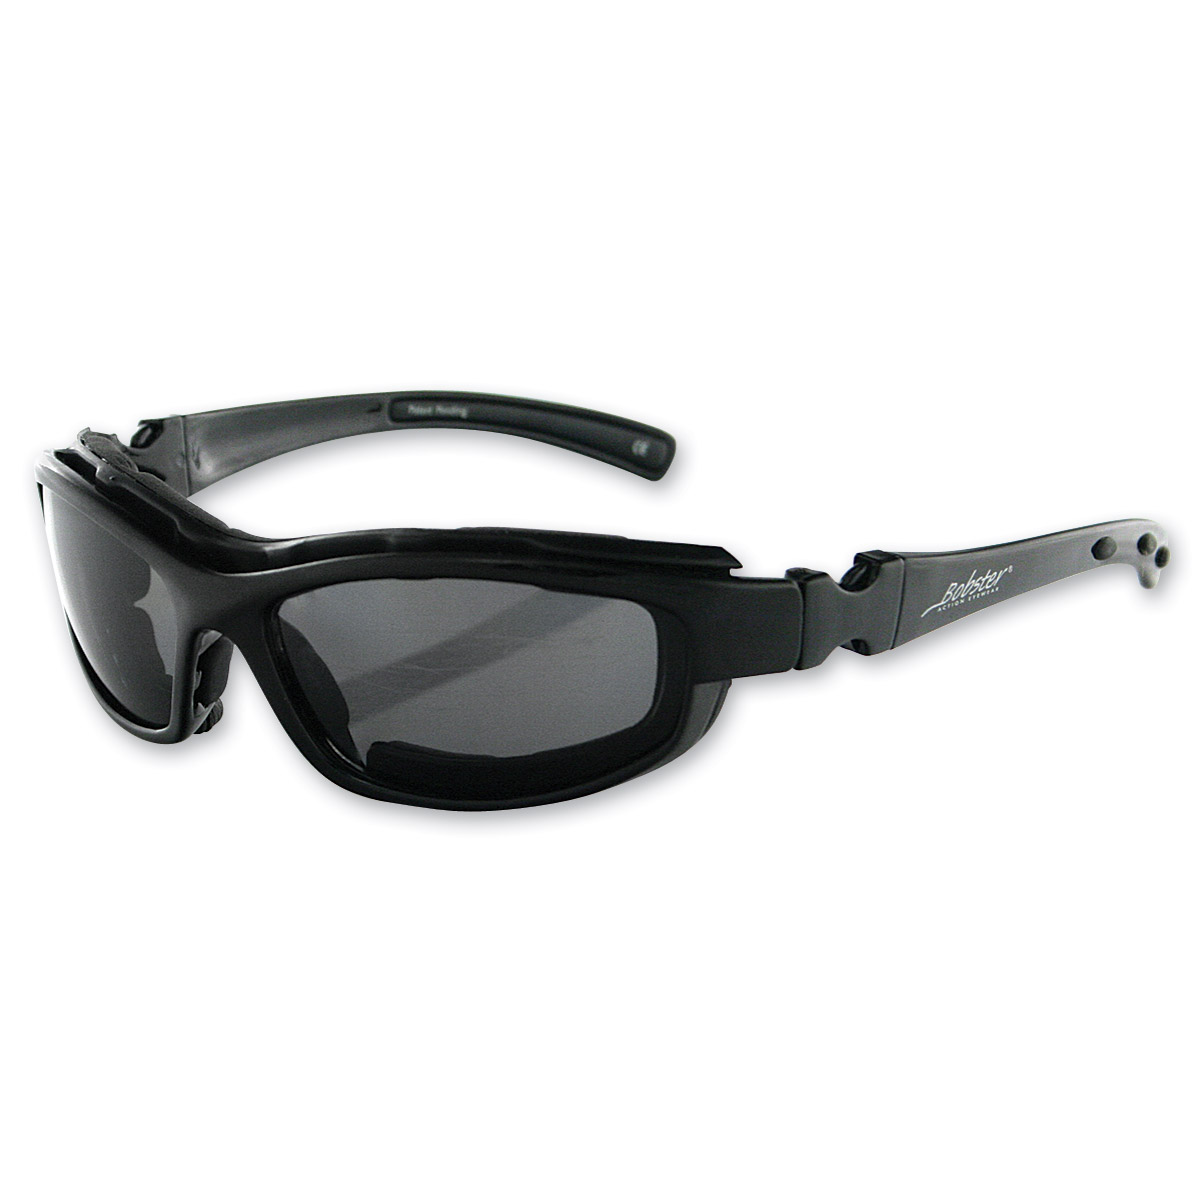 Bobster BRH2001 Road Hog II Convertible Black Sunglasses 4 Lens PartNumber: 00667366000P